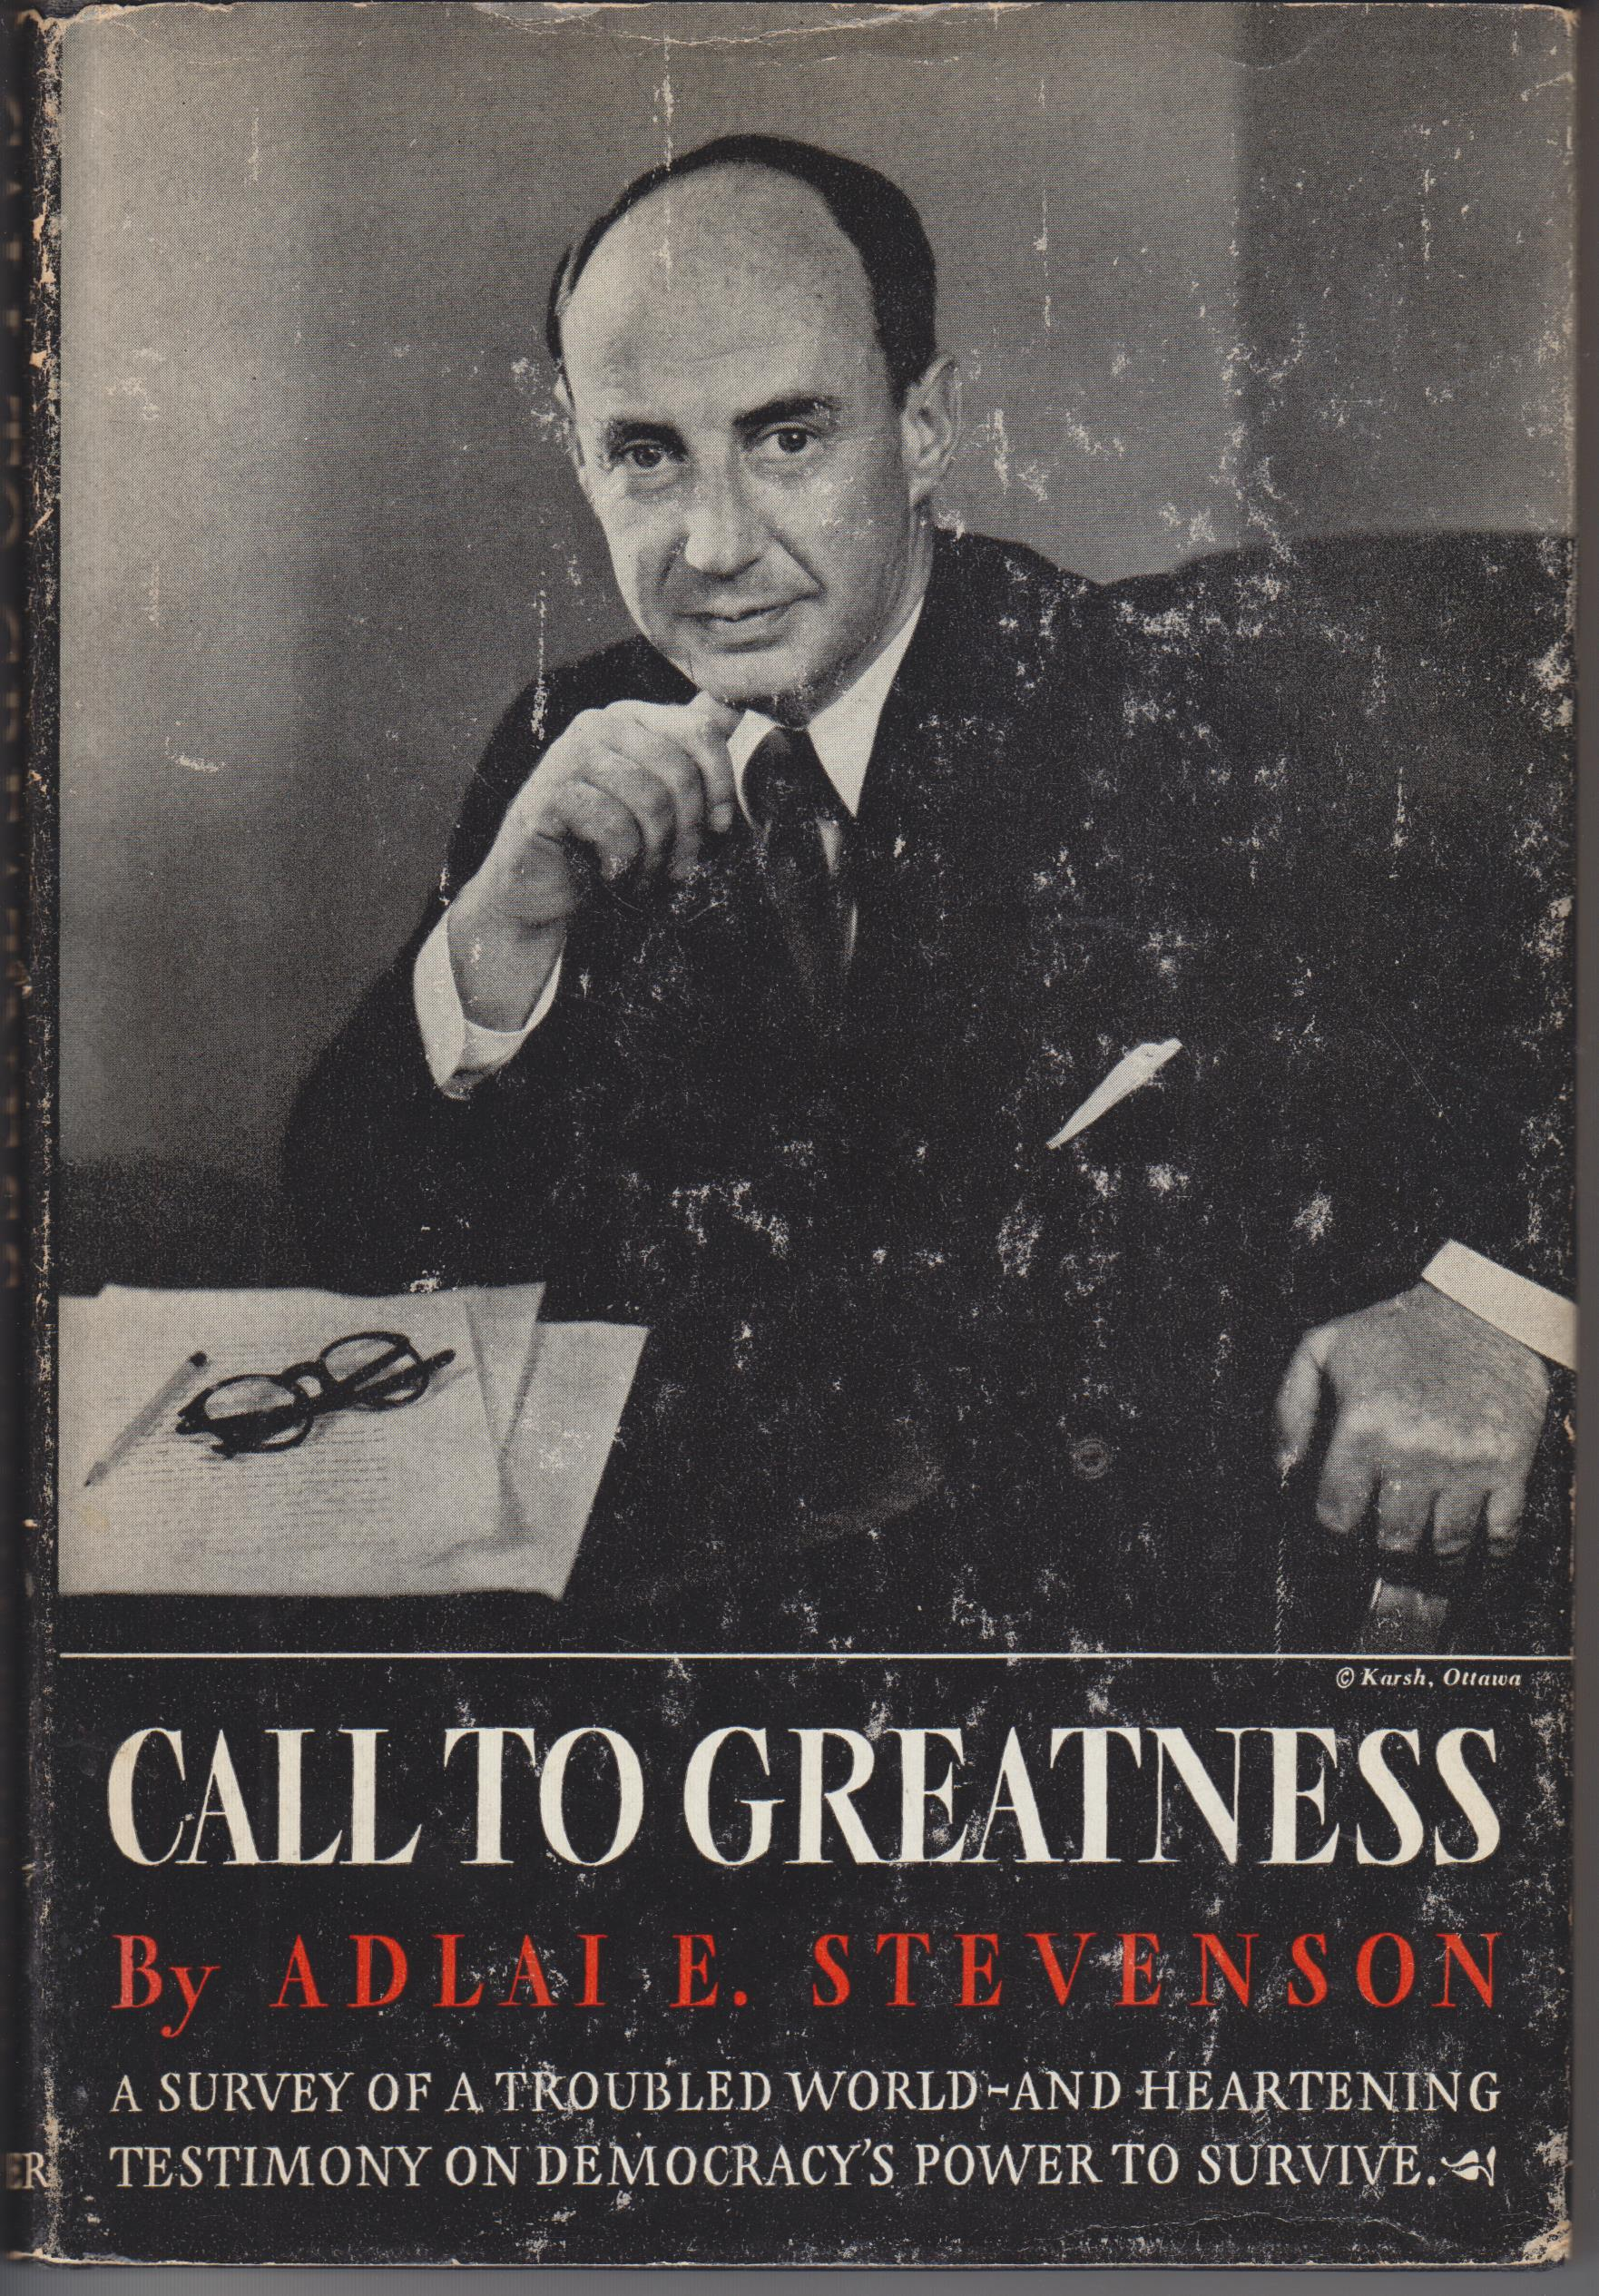 Call to Greatness